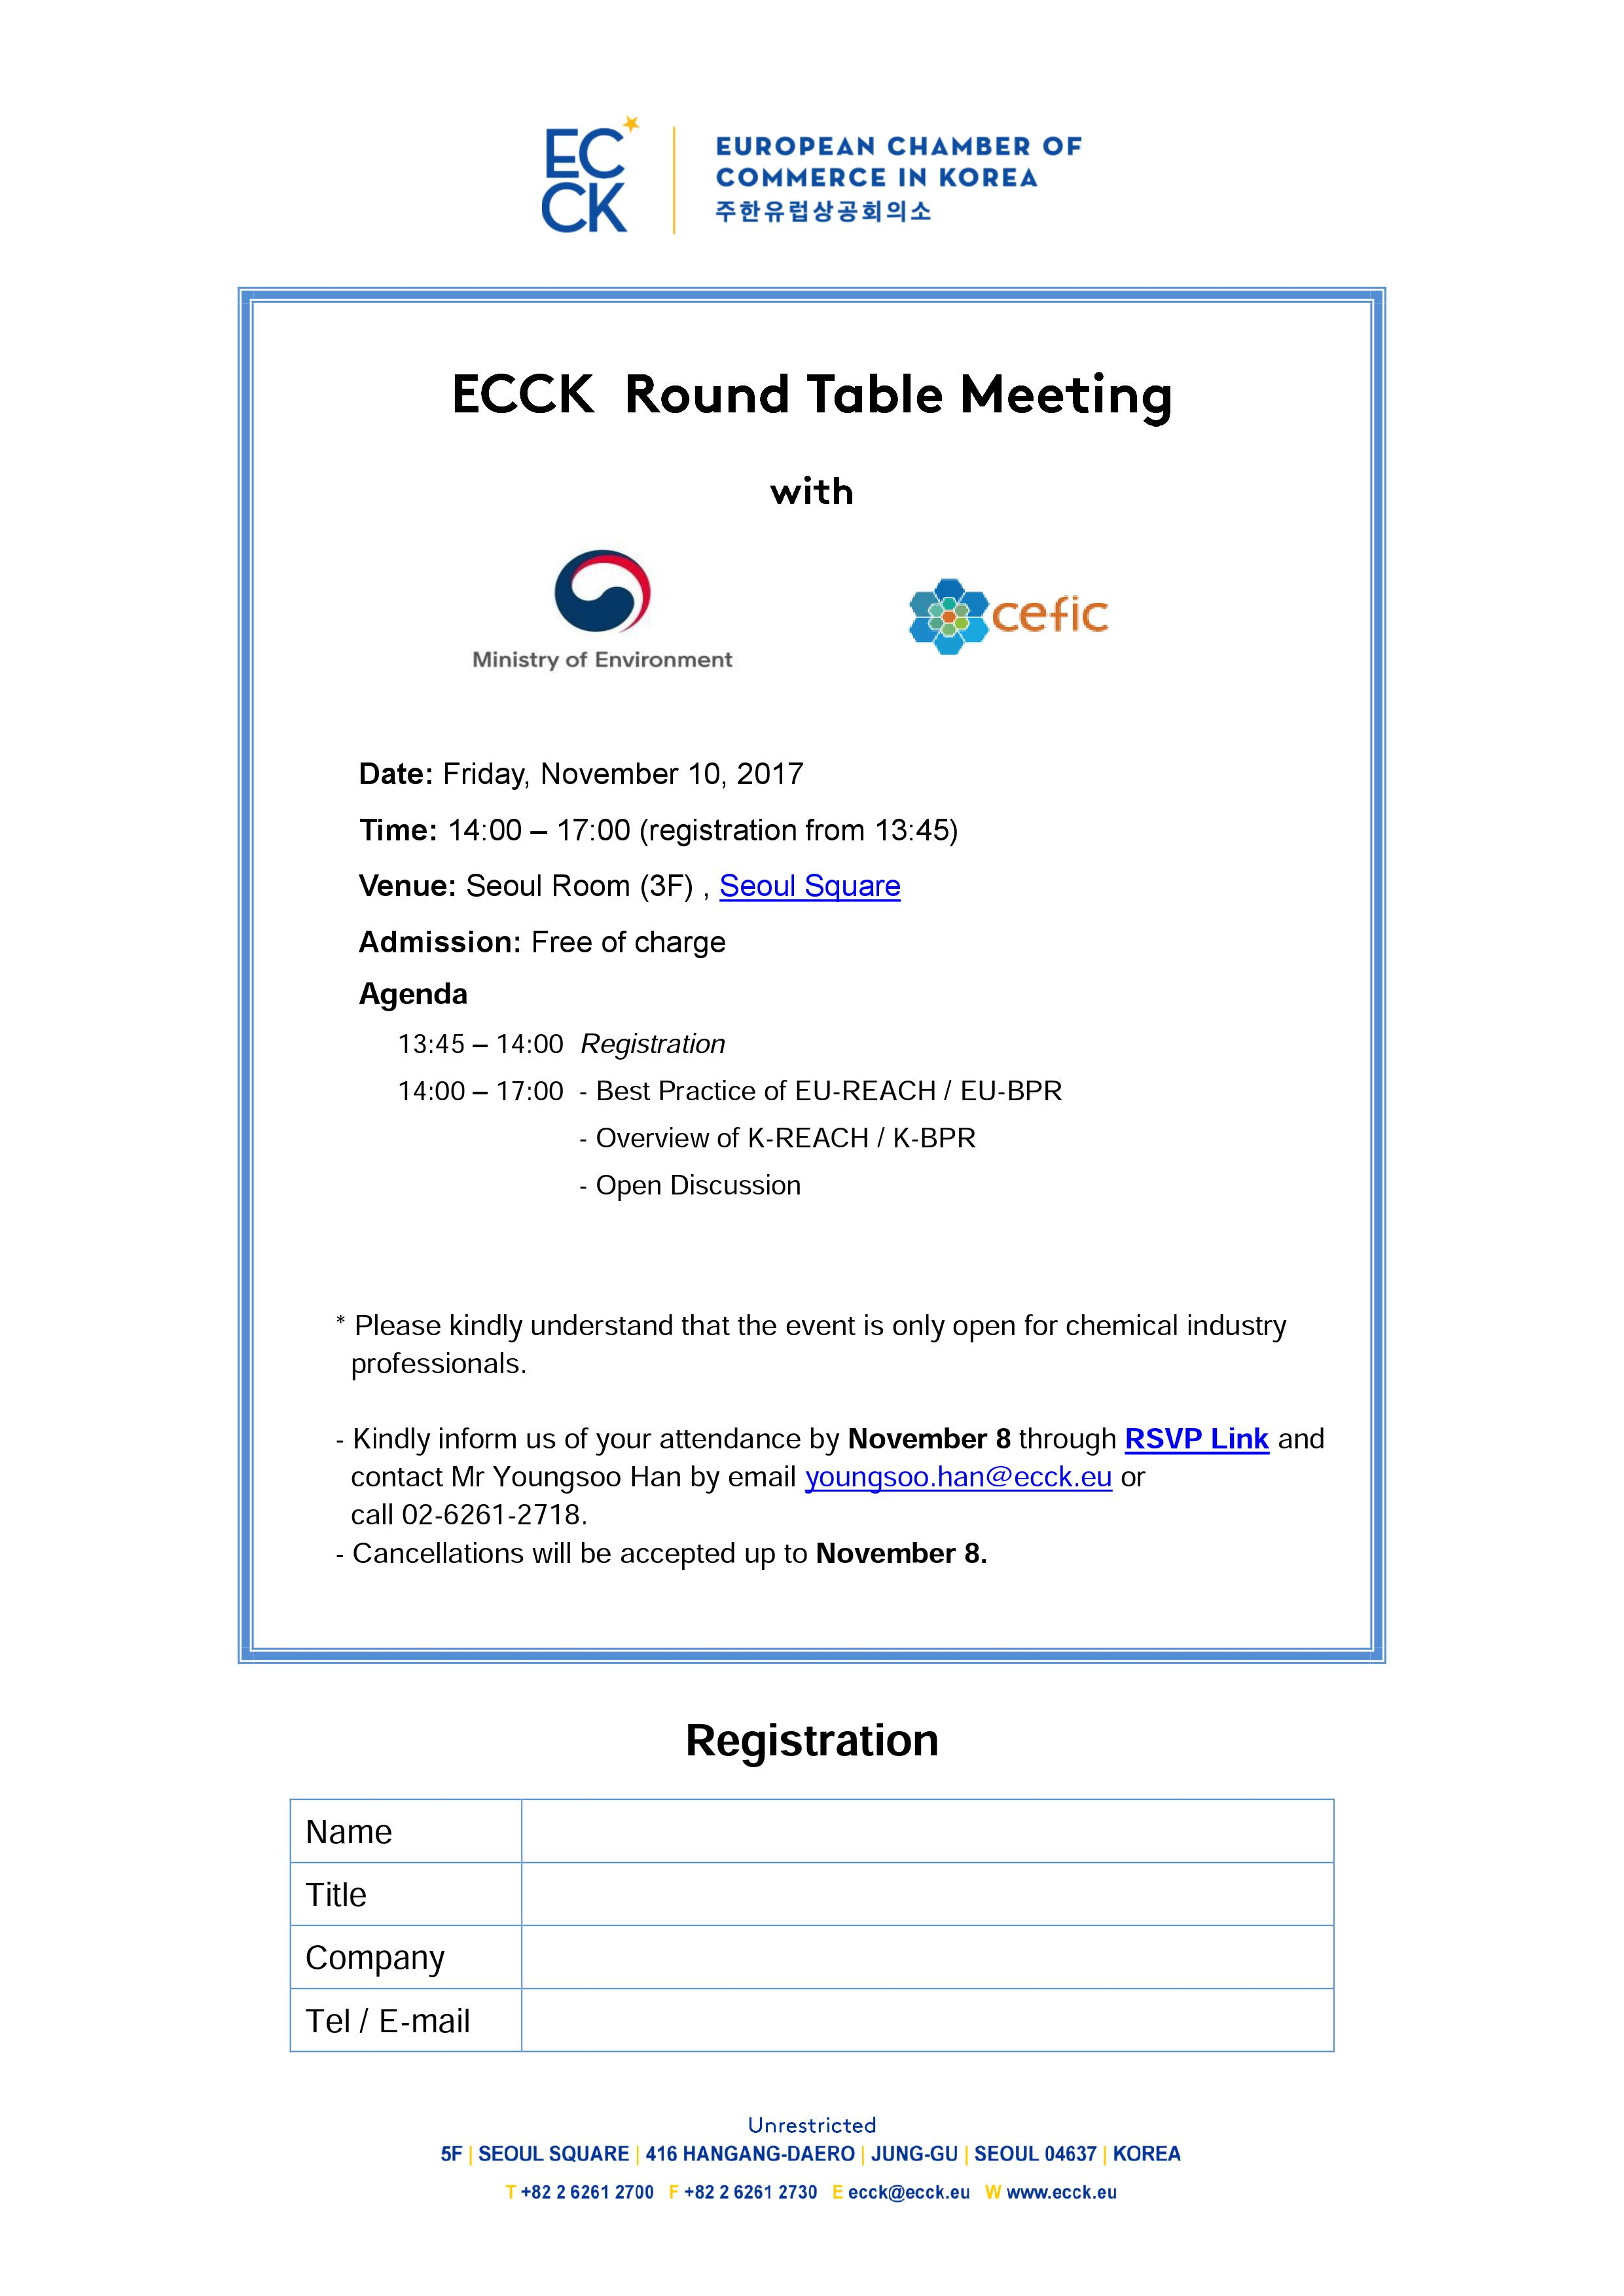 Groovy Ecck Round Table Meeting With Ministry Of Environment Cefic Download Free Architecture Designs Itiscsunscenecom